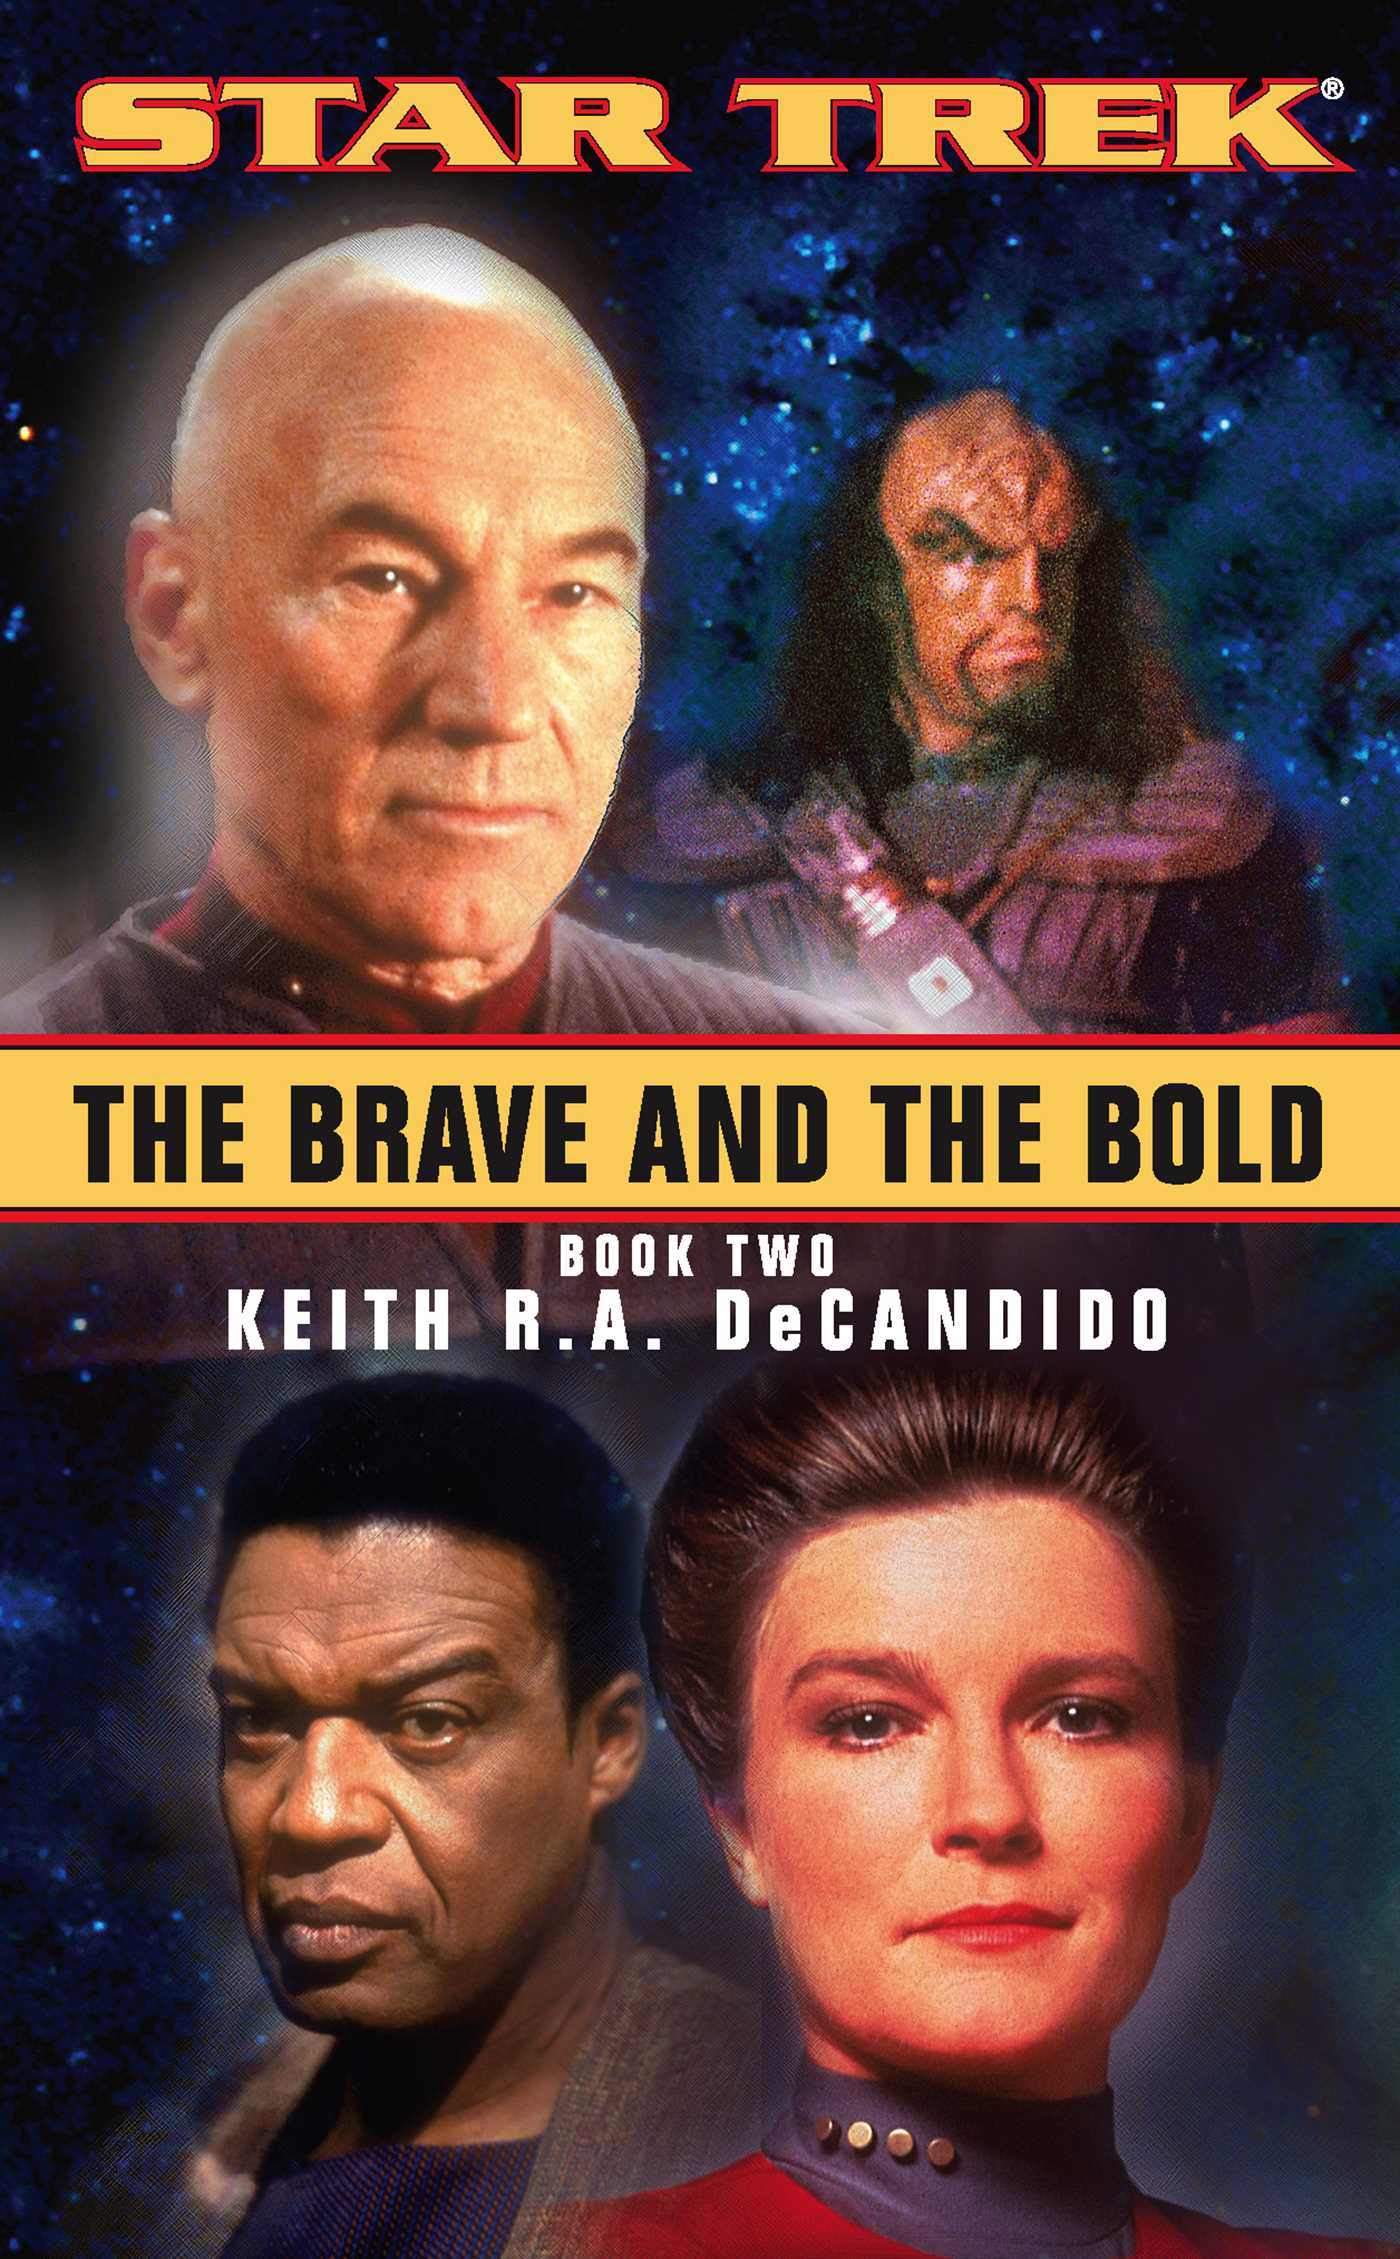 The-brave-and-the-bold-book-two-9780743419253_hr